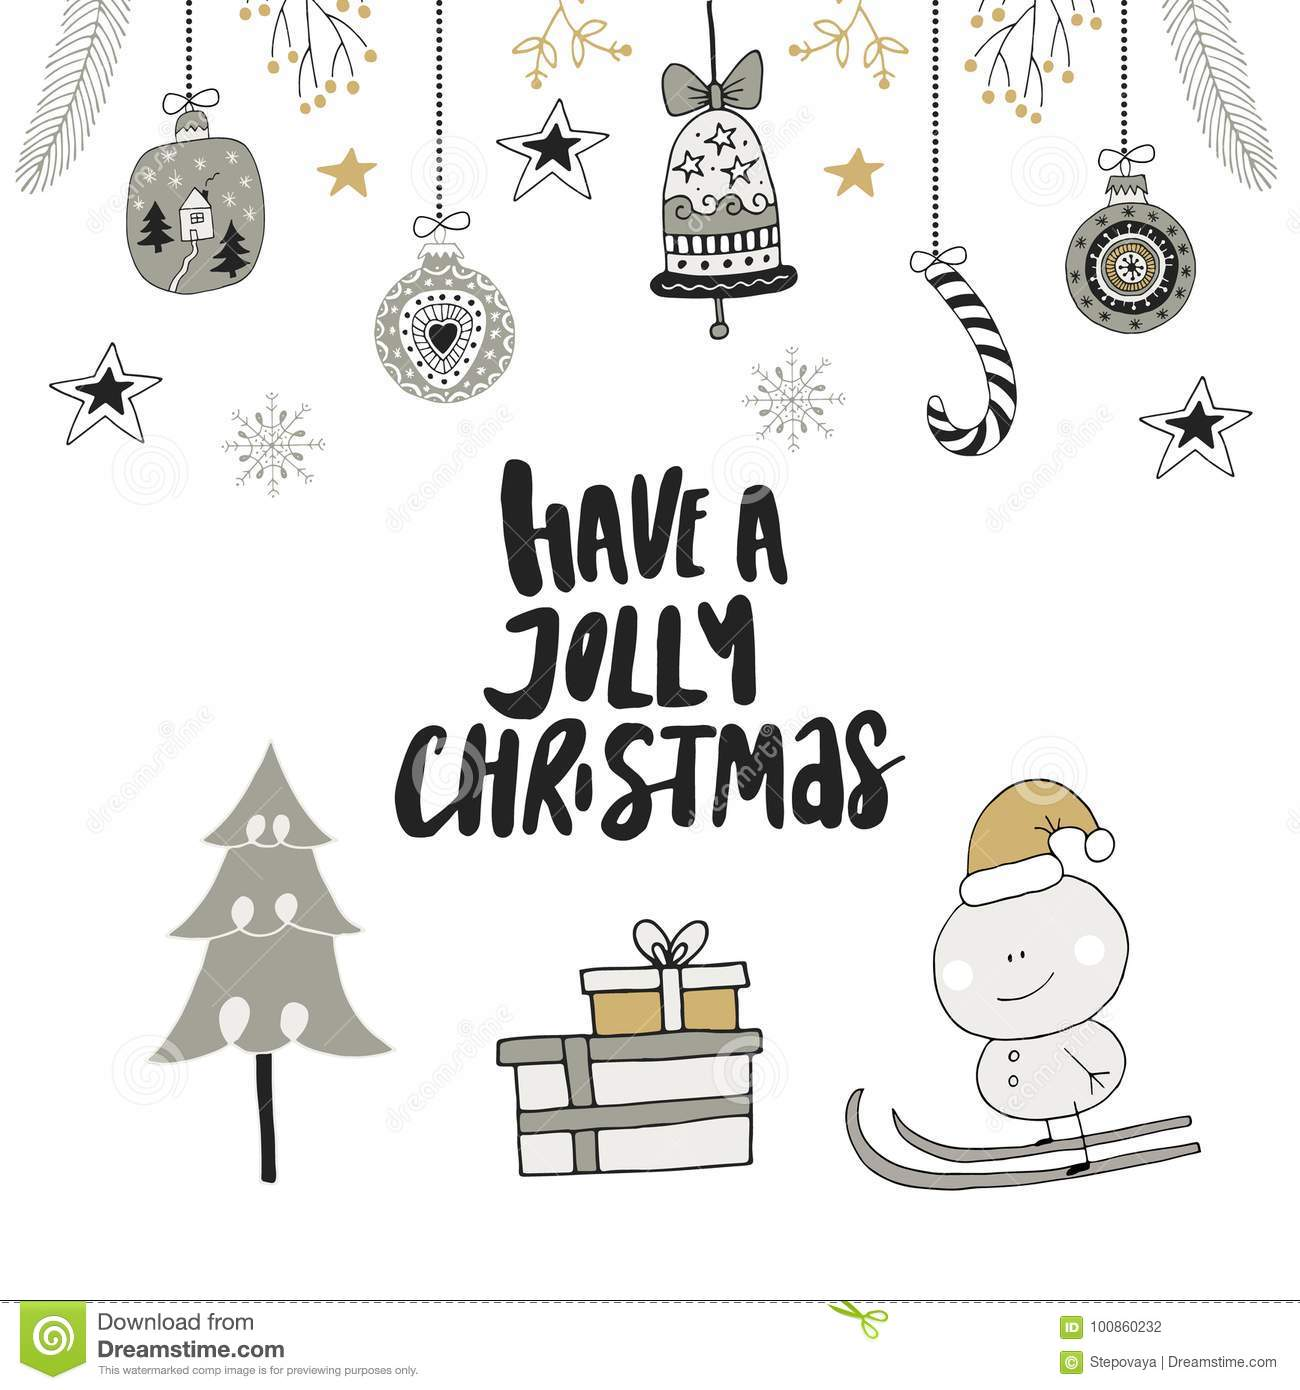 cute new year clip art royalty free illustration have a jolly christmas hand drawn christmas lettering with floral and decorations cute new